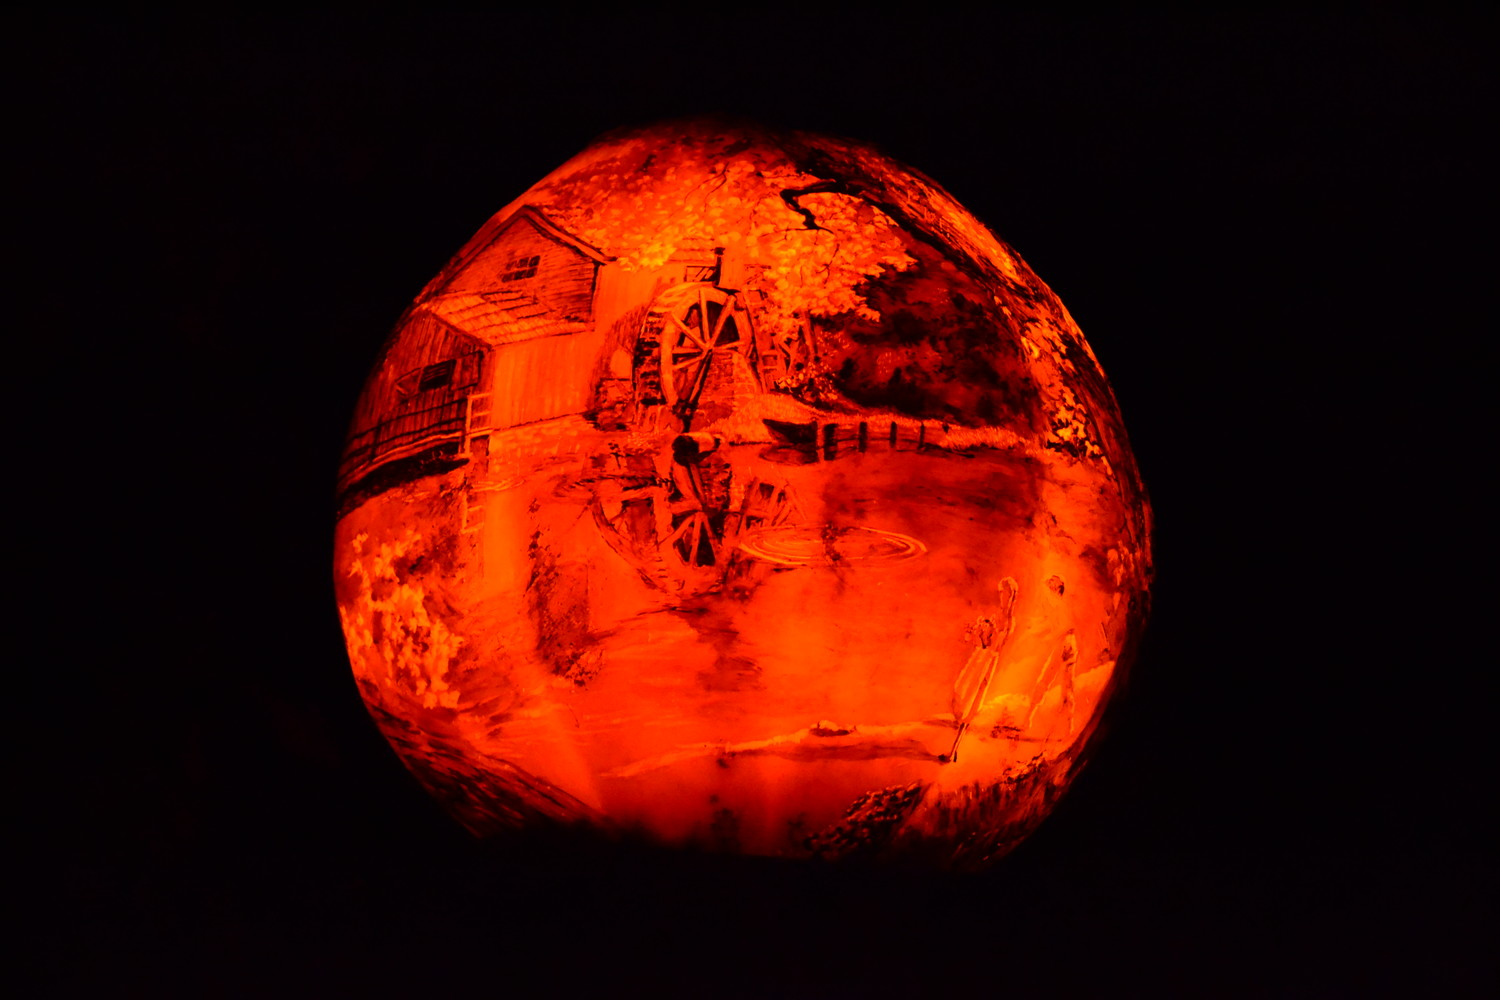 An example of a jack-o-lantern in the midst of total darkness. The artists are able to create incredibly complex, 3D pictures that display a wide variety of subjects.